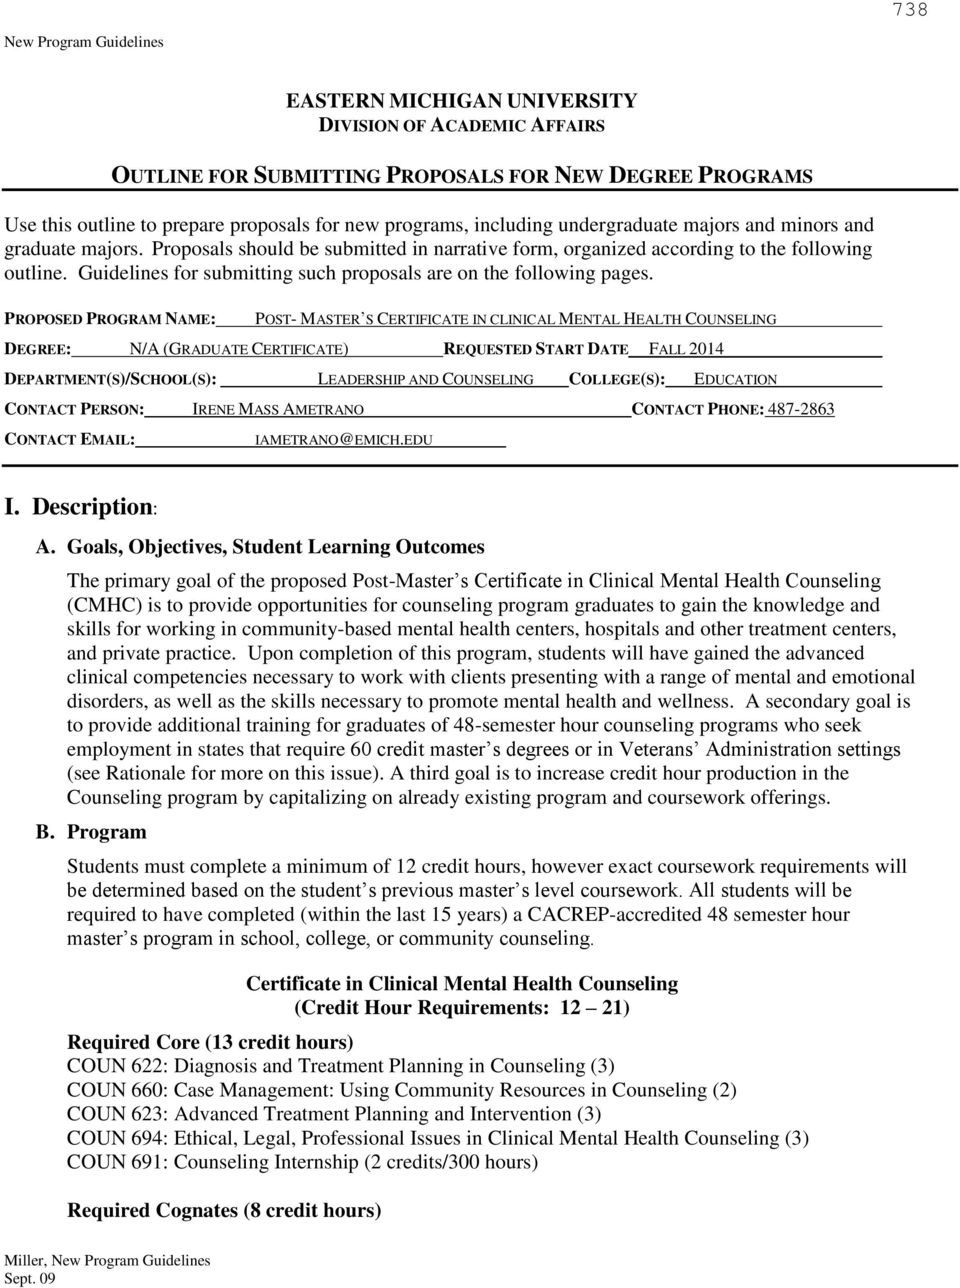 Eastern Michigan University Division Of Academic Affairs Proposal